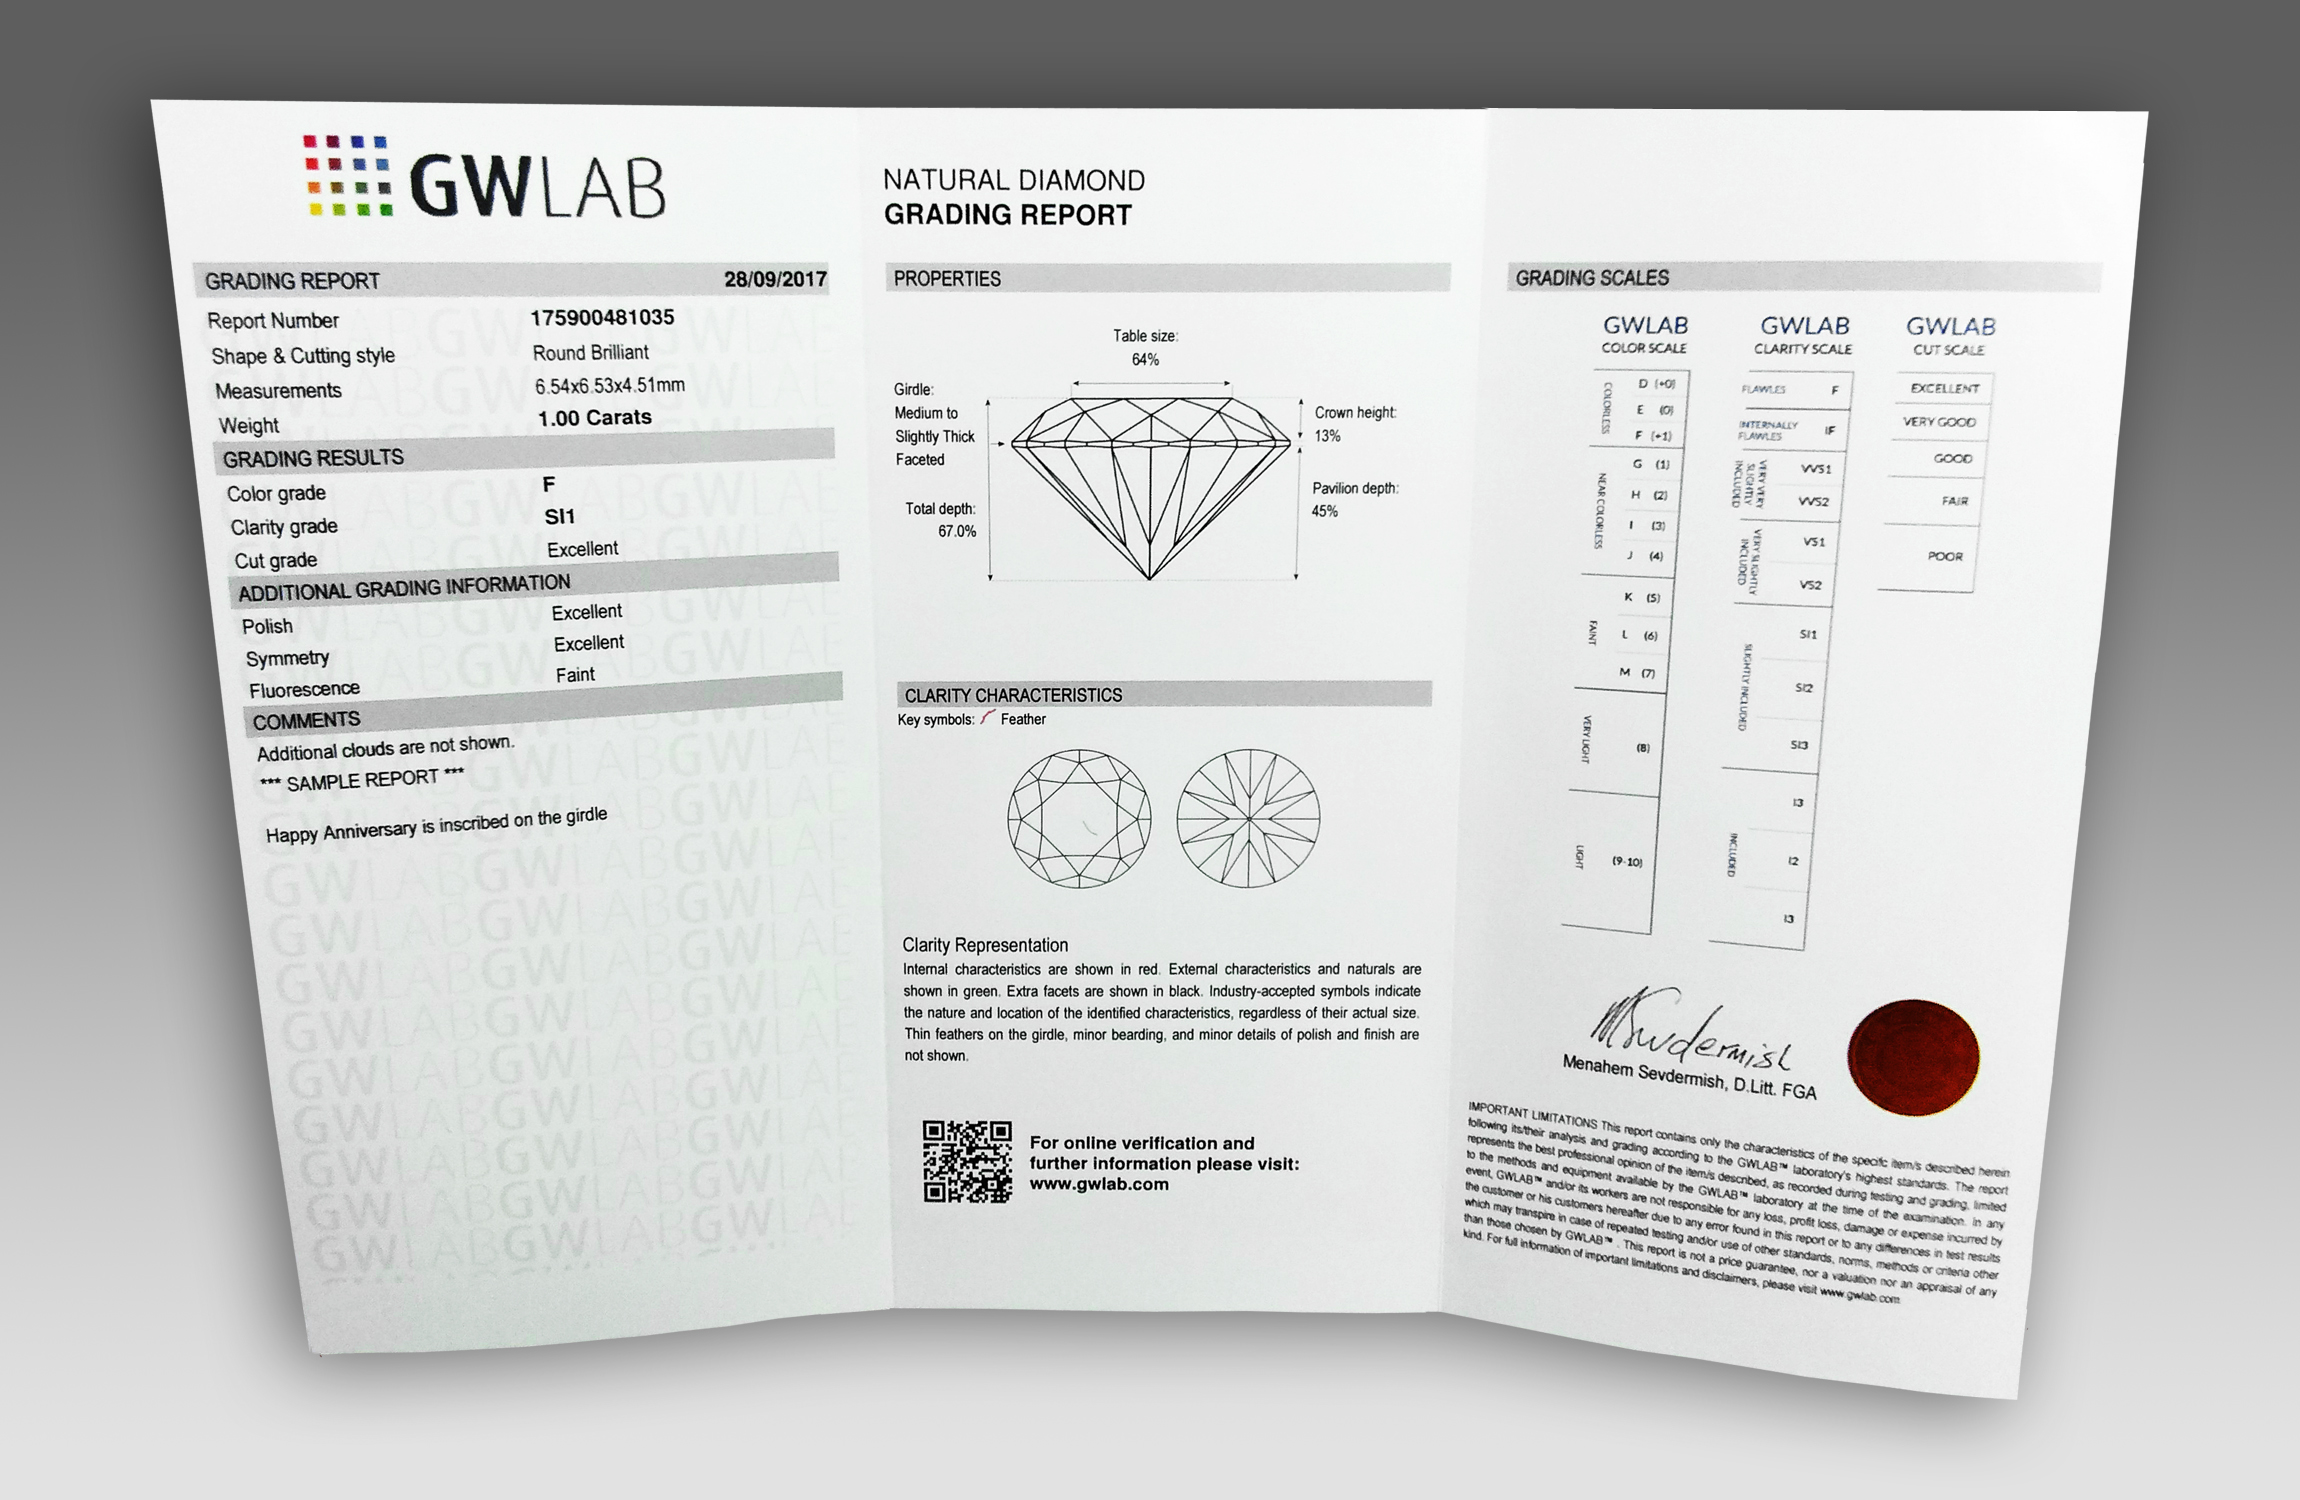 gia cdgr report colored diamond grading of sample en us